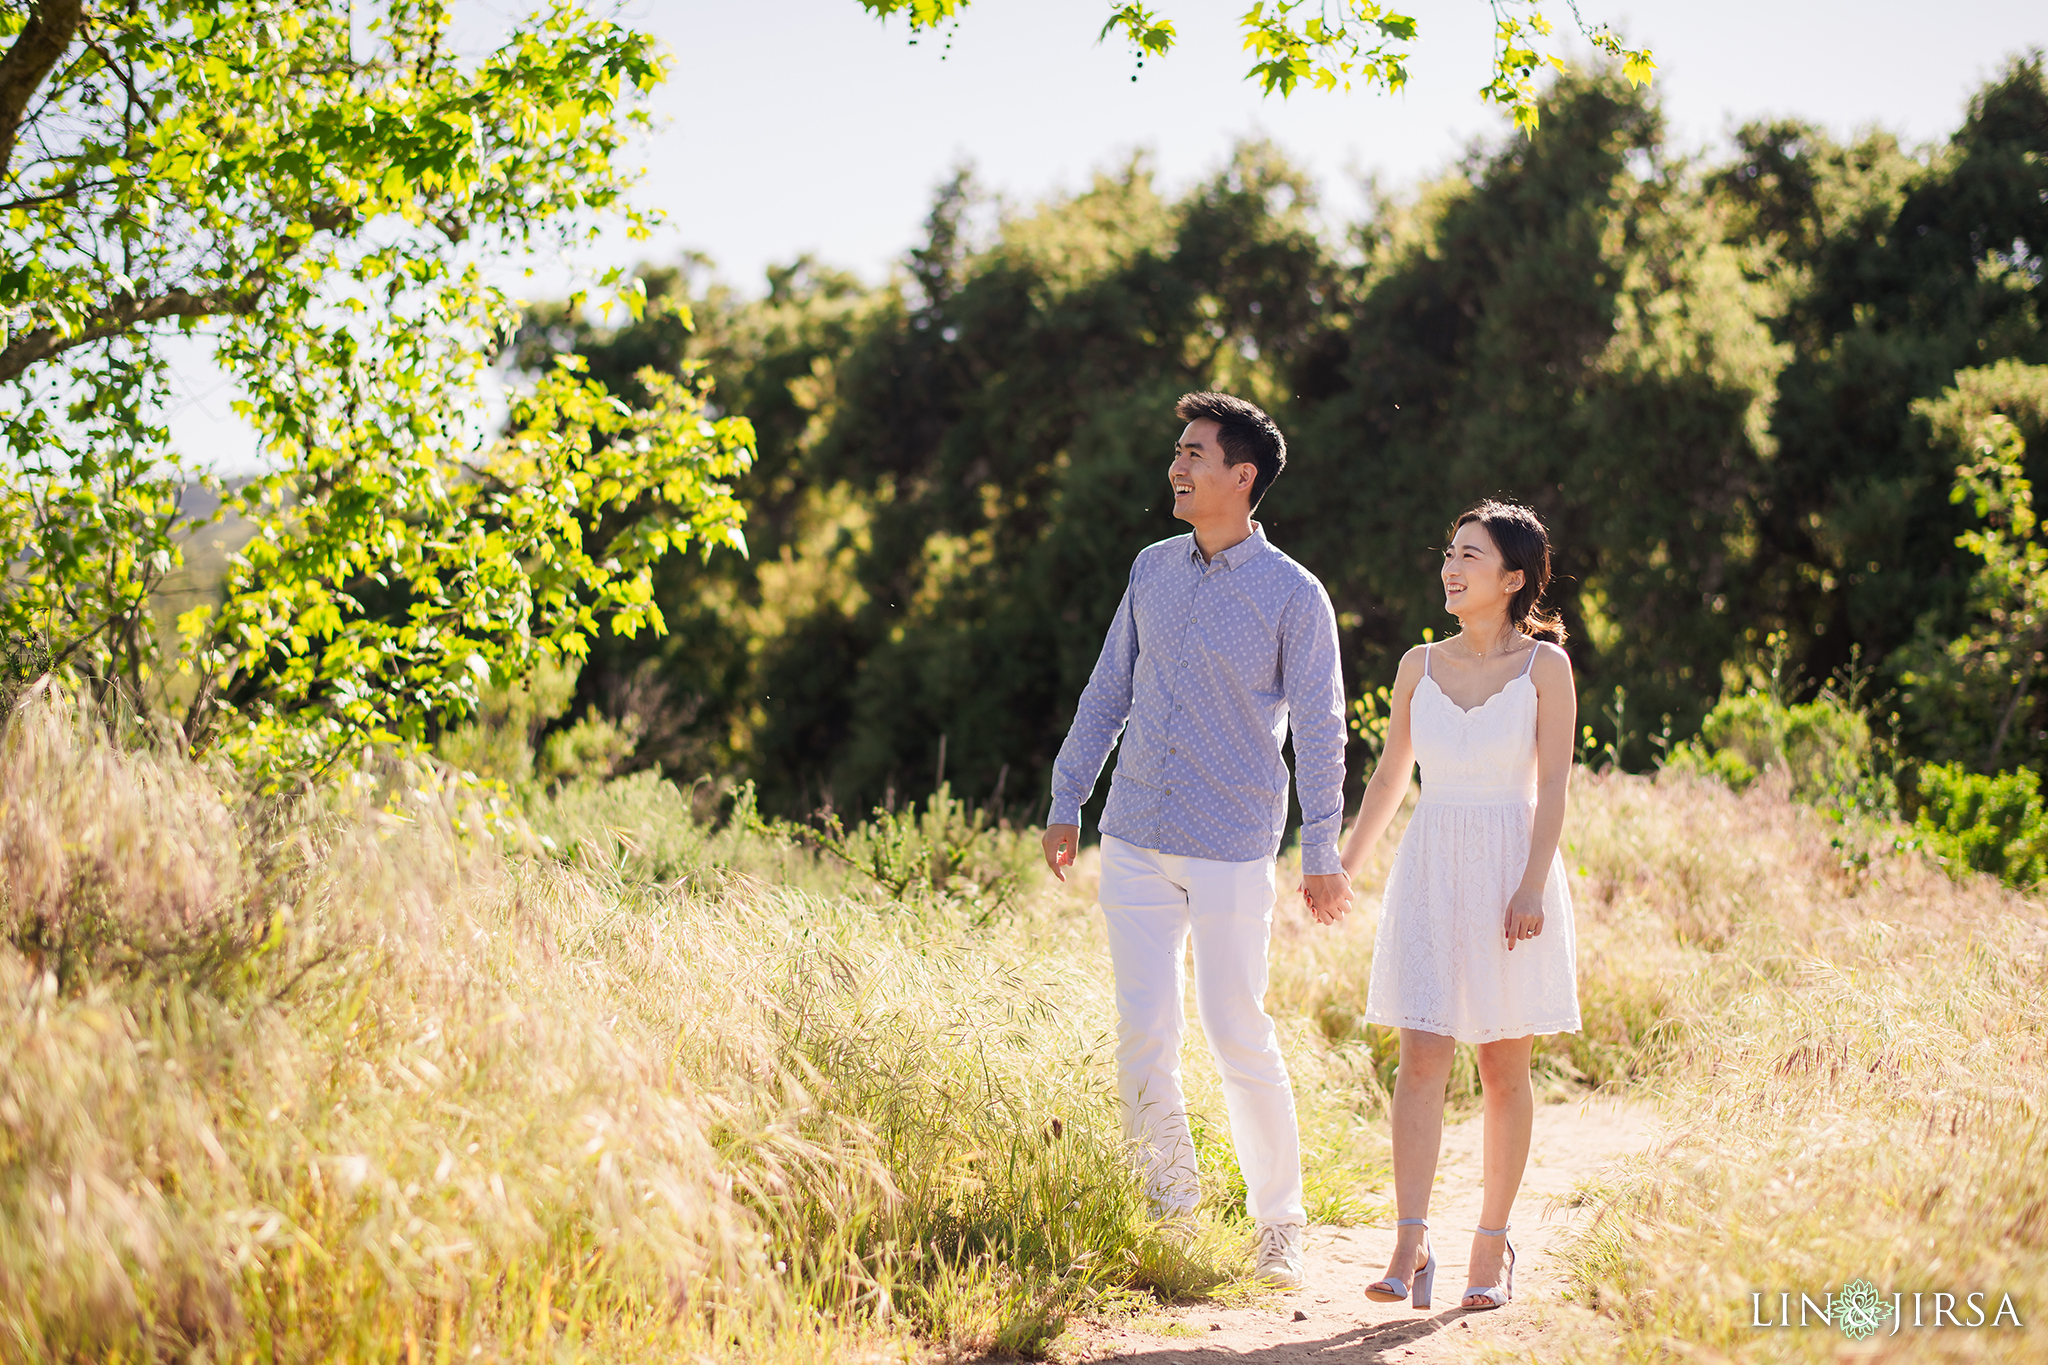 03 James Dilley Orange County Engagement Photography